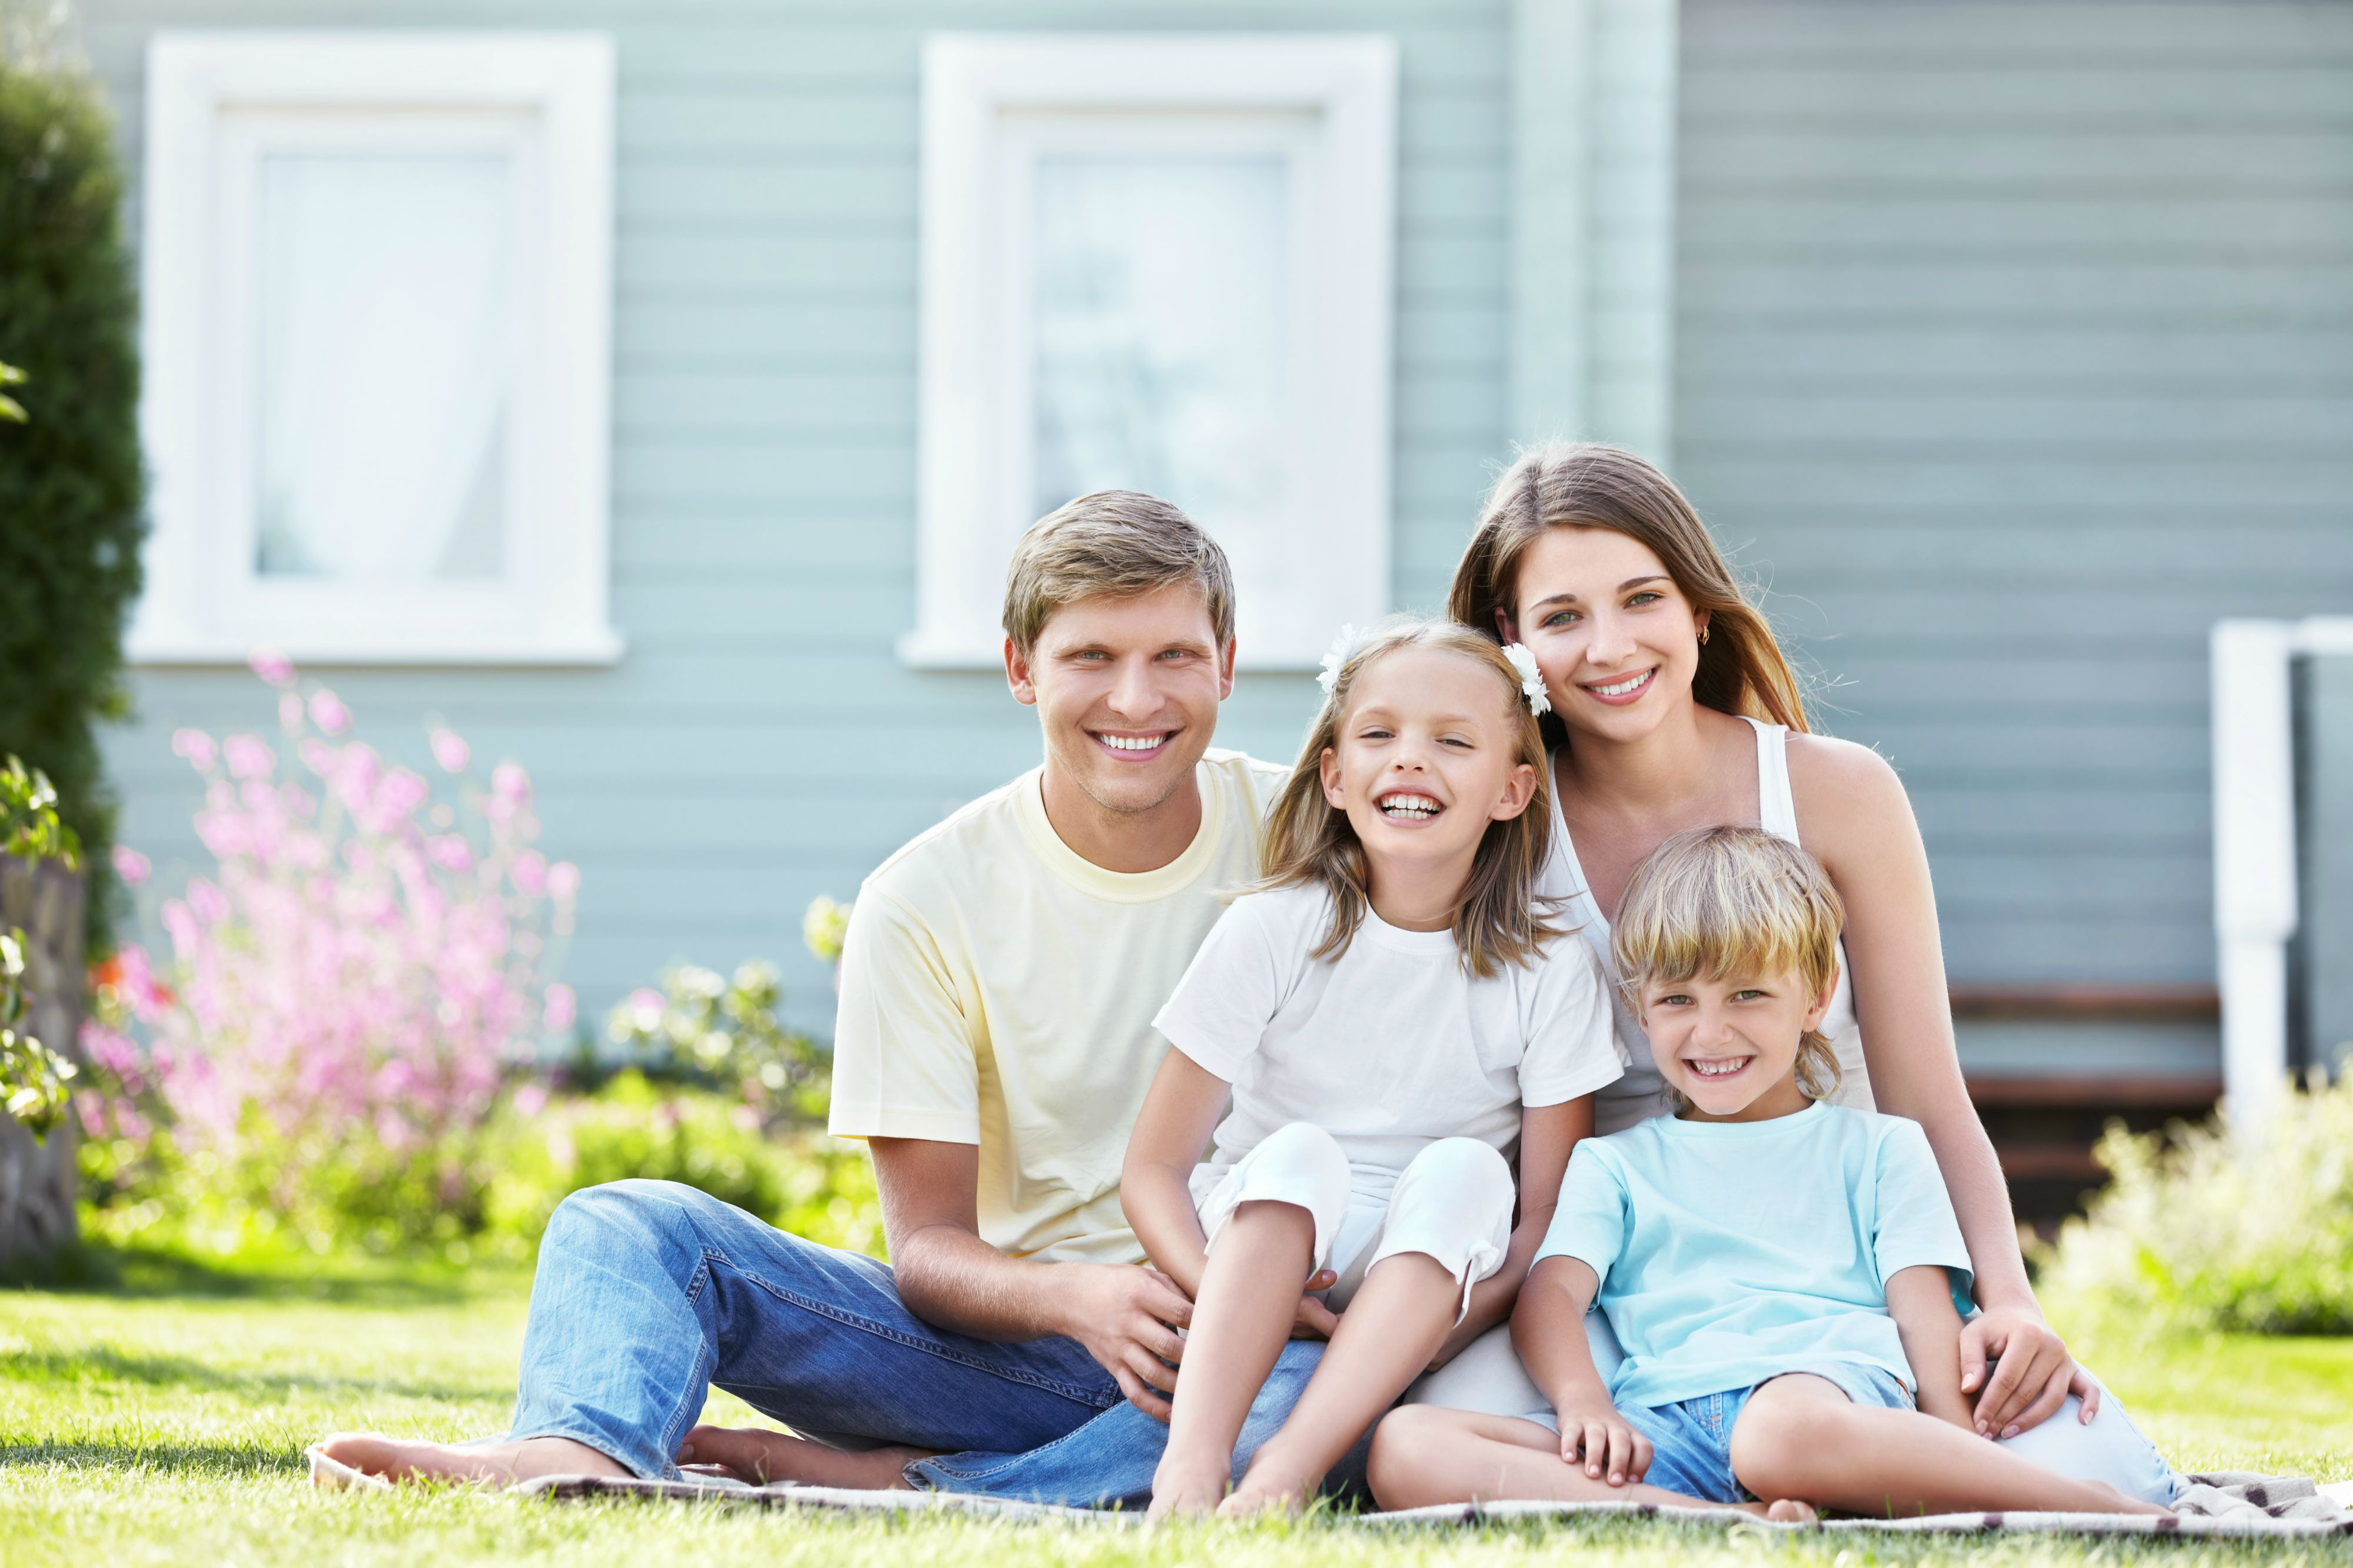 Bodega California Homeowners Insurance